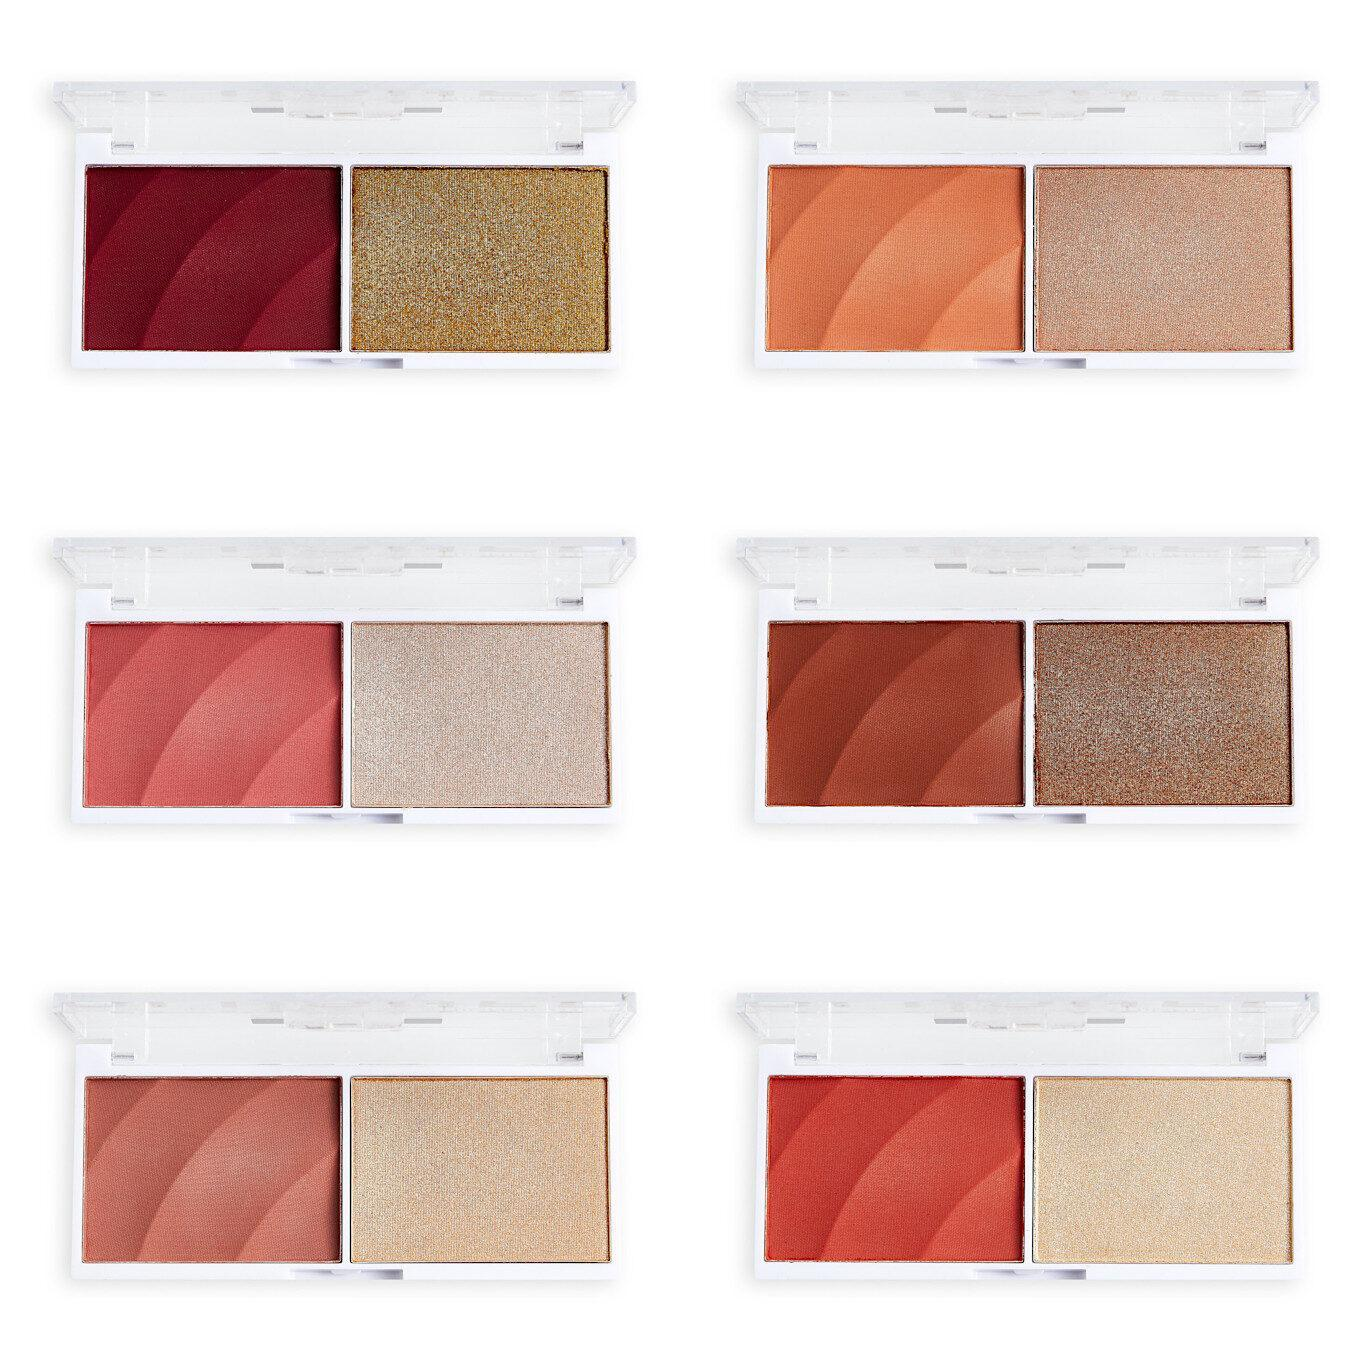 ReLove by Revolution Colour Play Blushed Duo